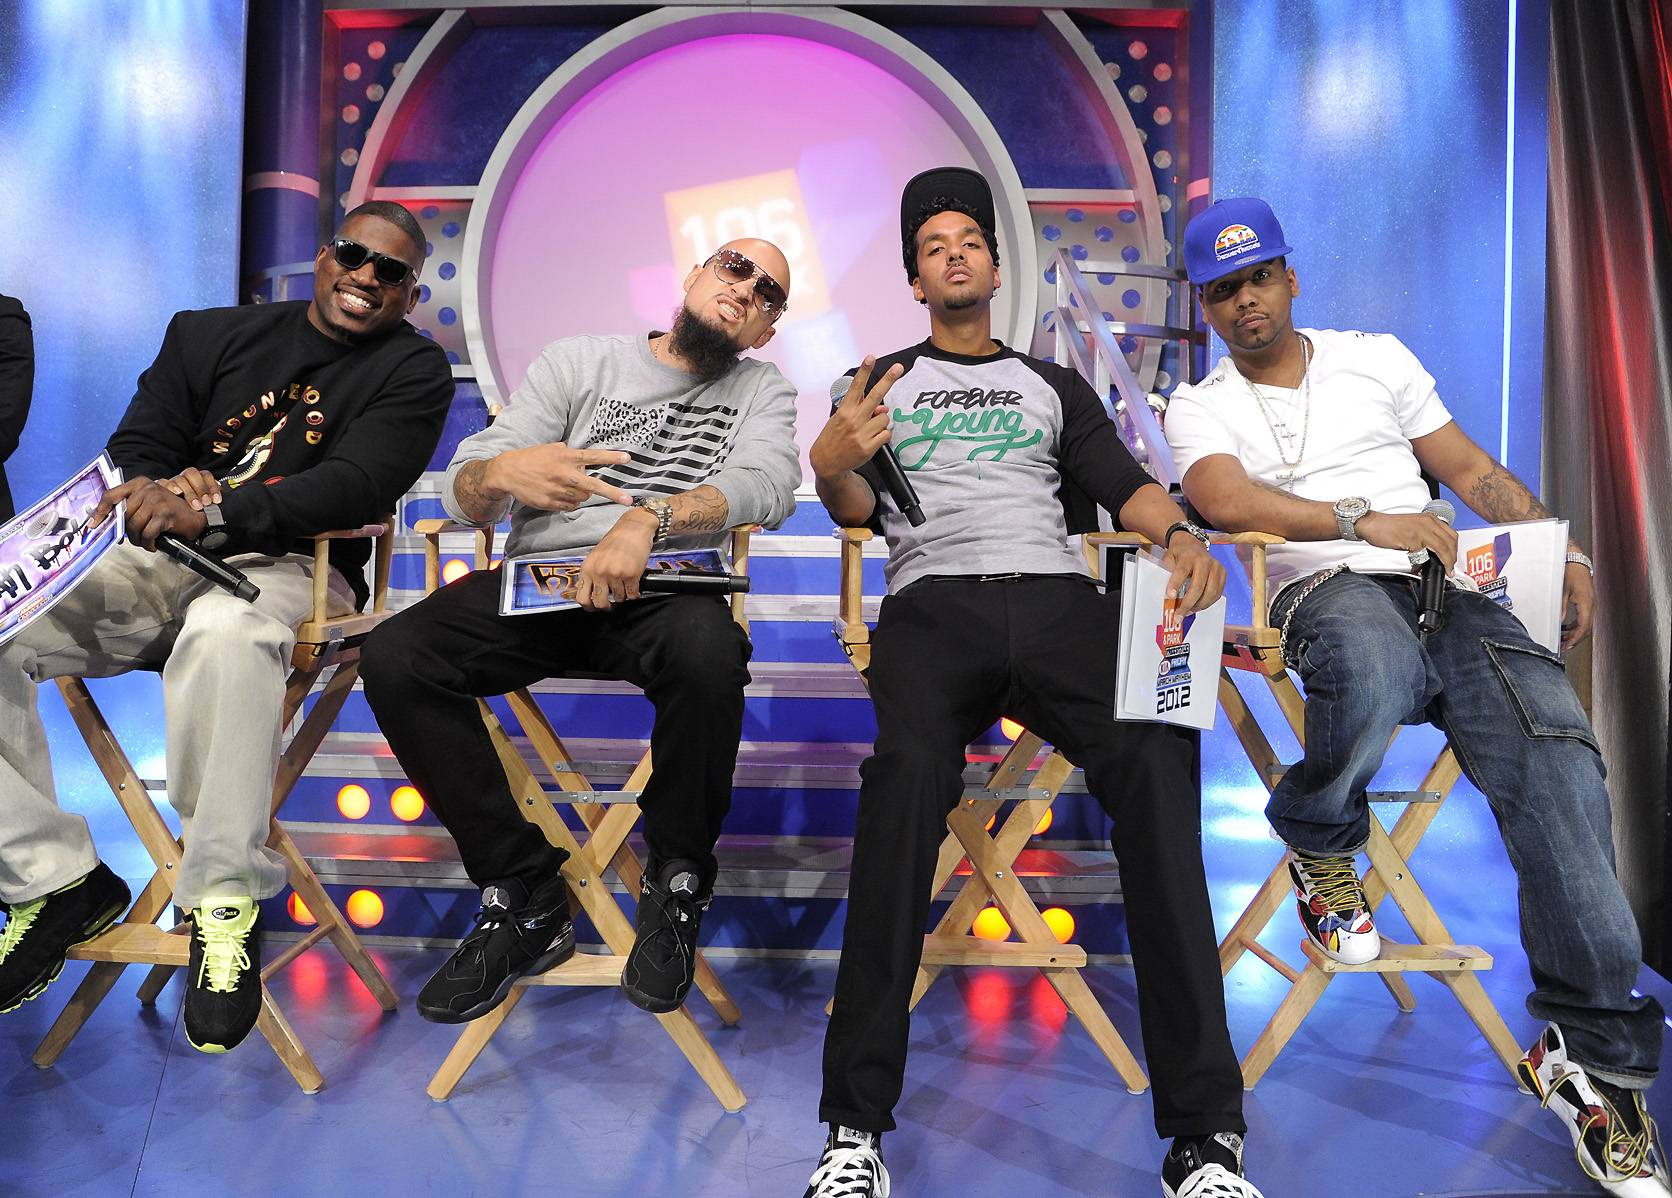 The Judges Are Ready! - Freestyle Friday judges David Banner, Cool and Dre and Juelz Santana at 106 & Park, April 6, 2012. (photo: John Ricard / BET)